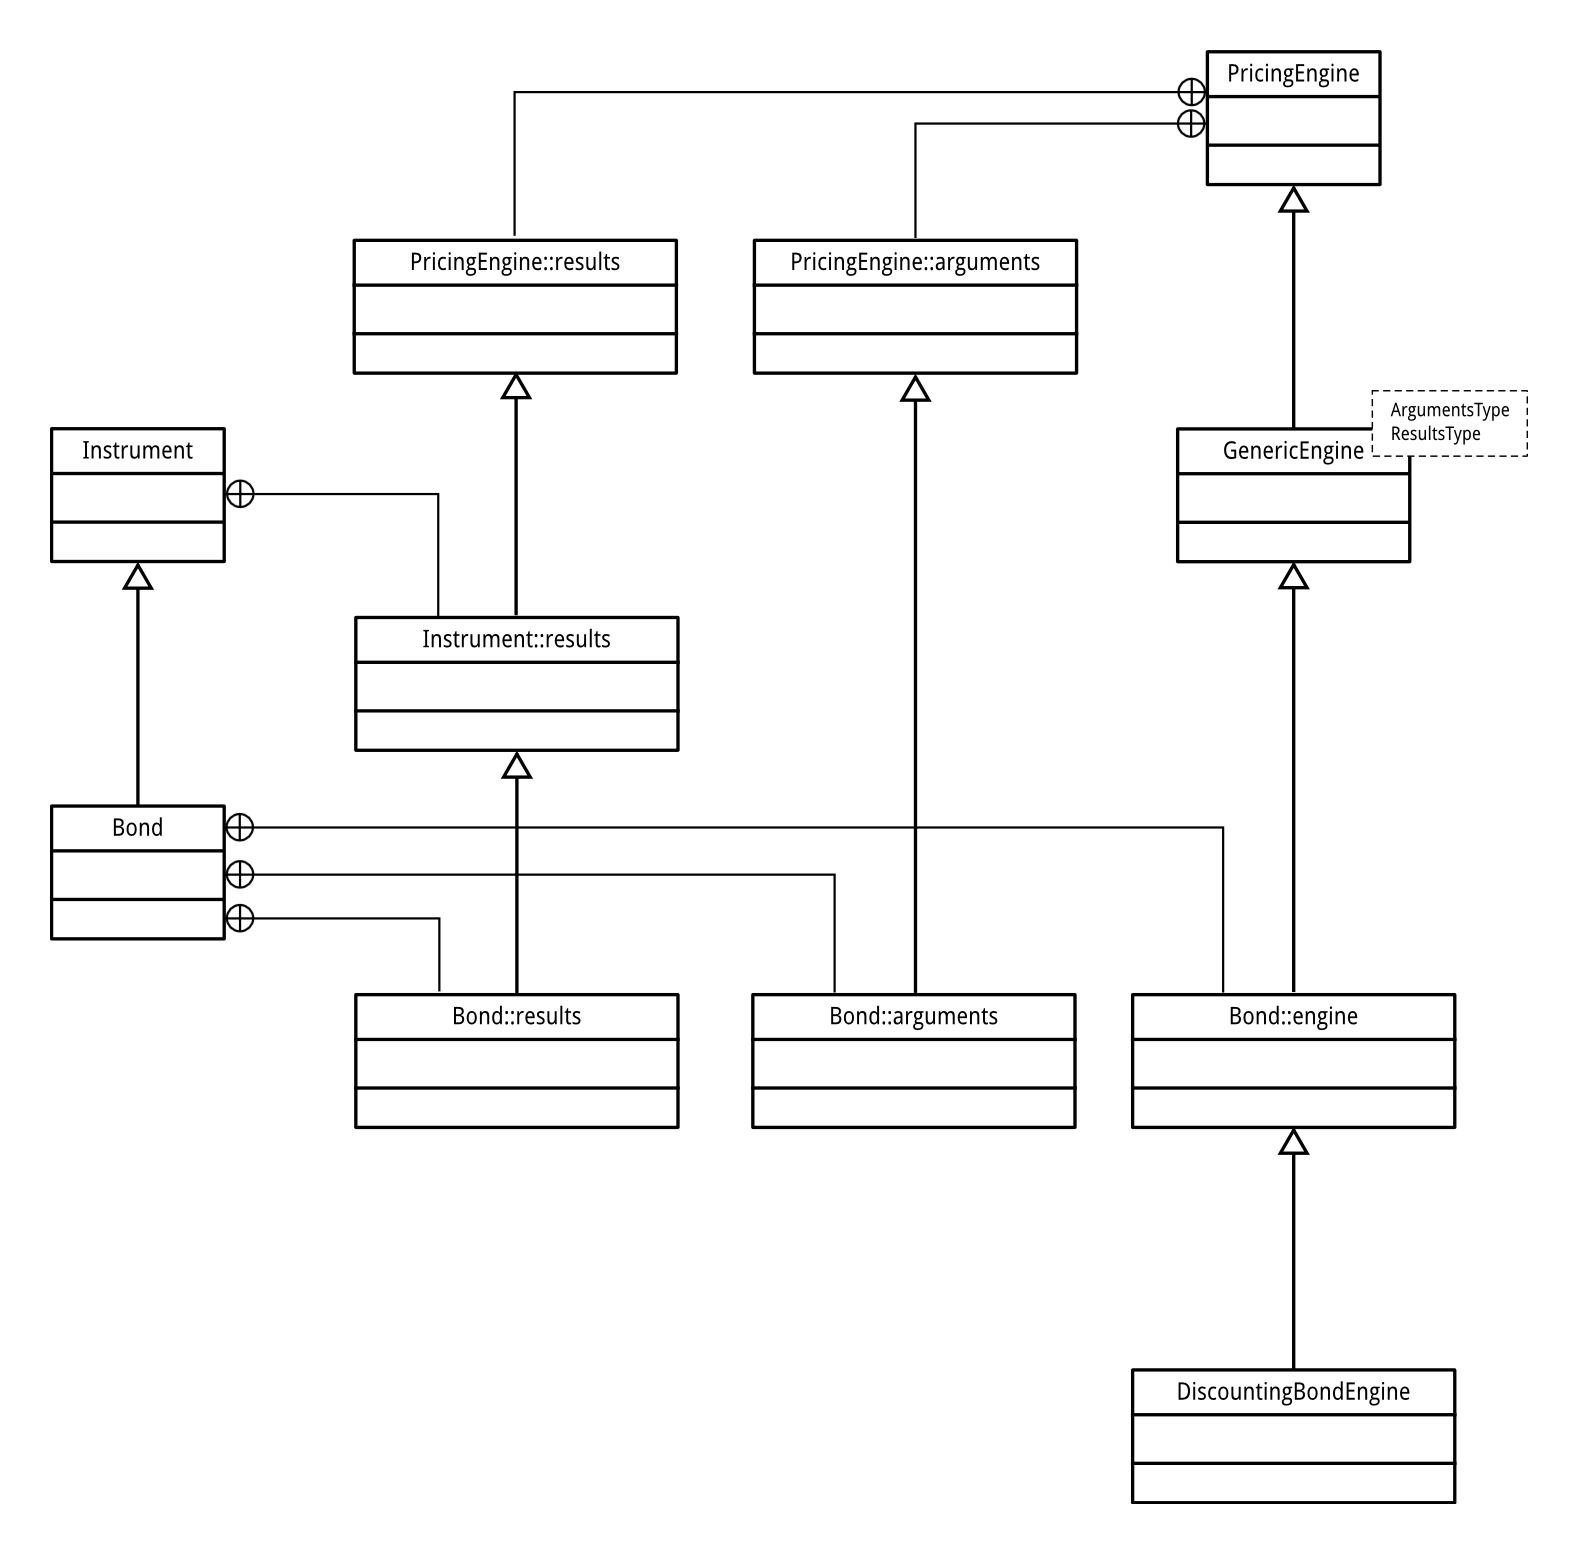 UML Diagram of DiscountingBondEngine and related classes